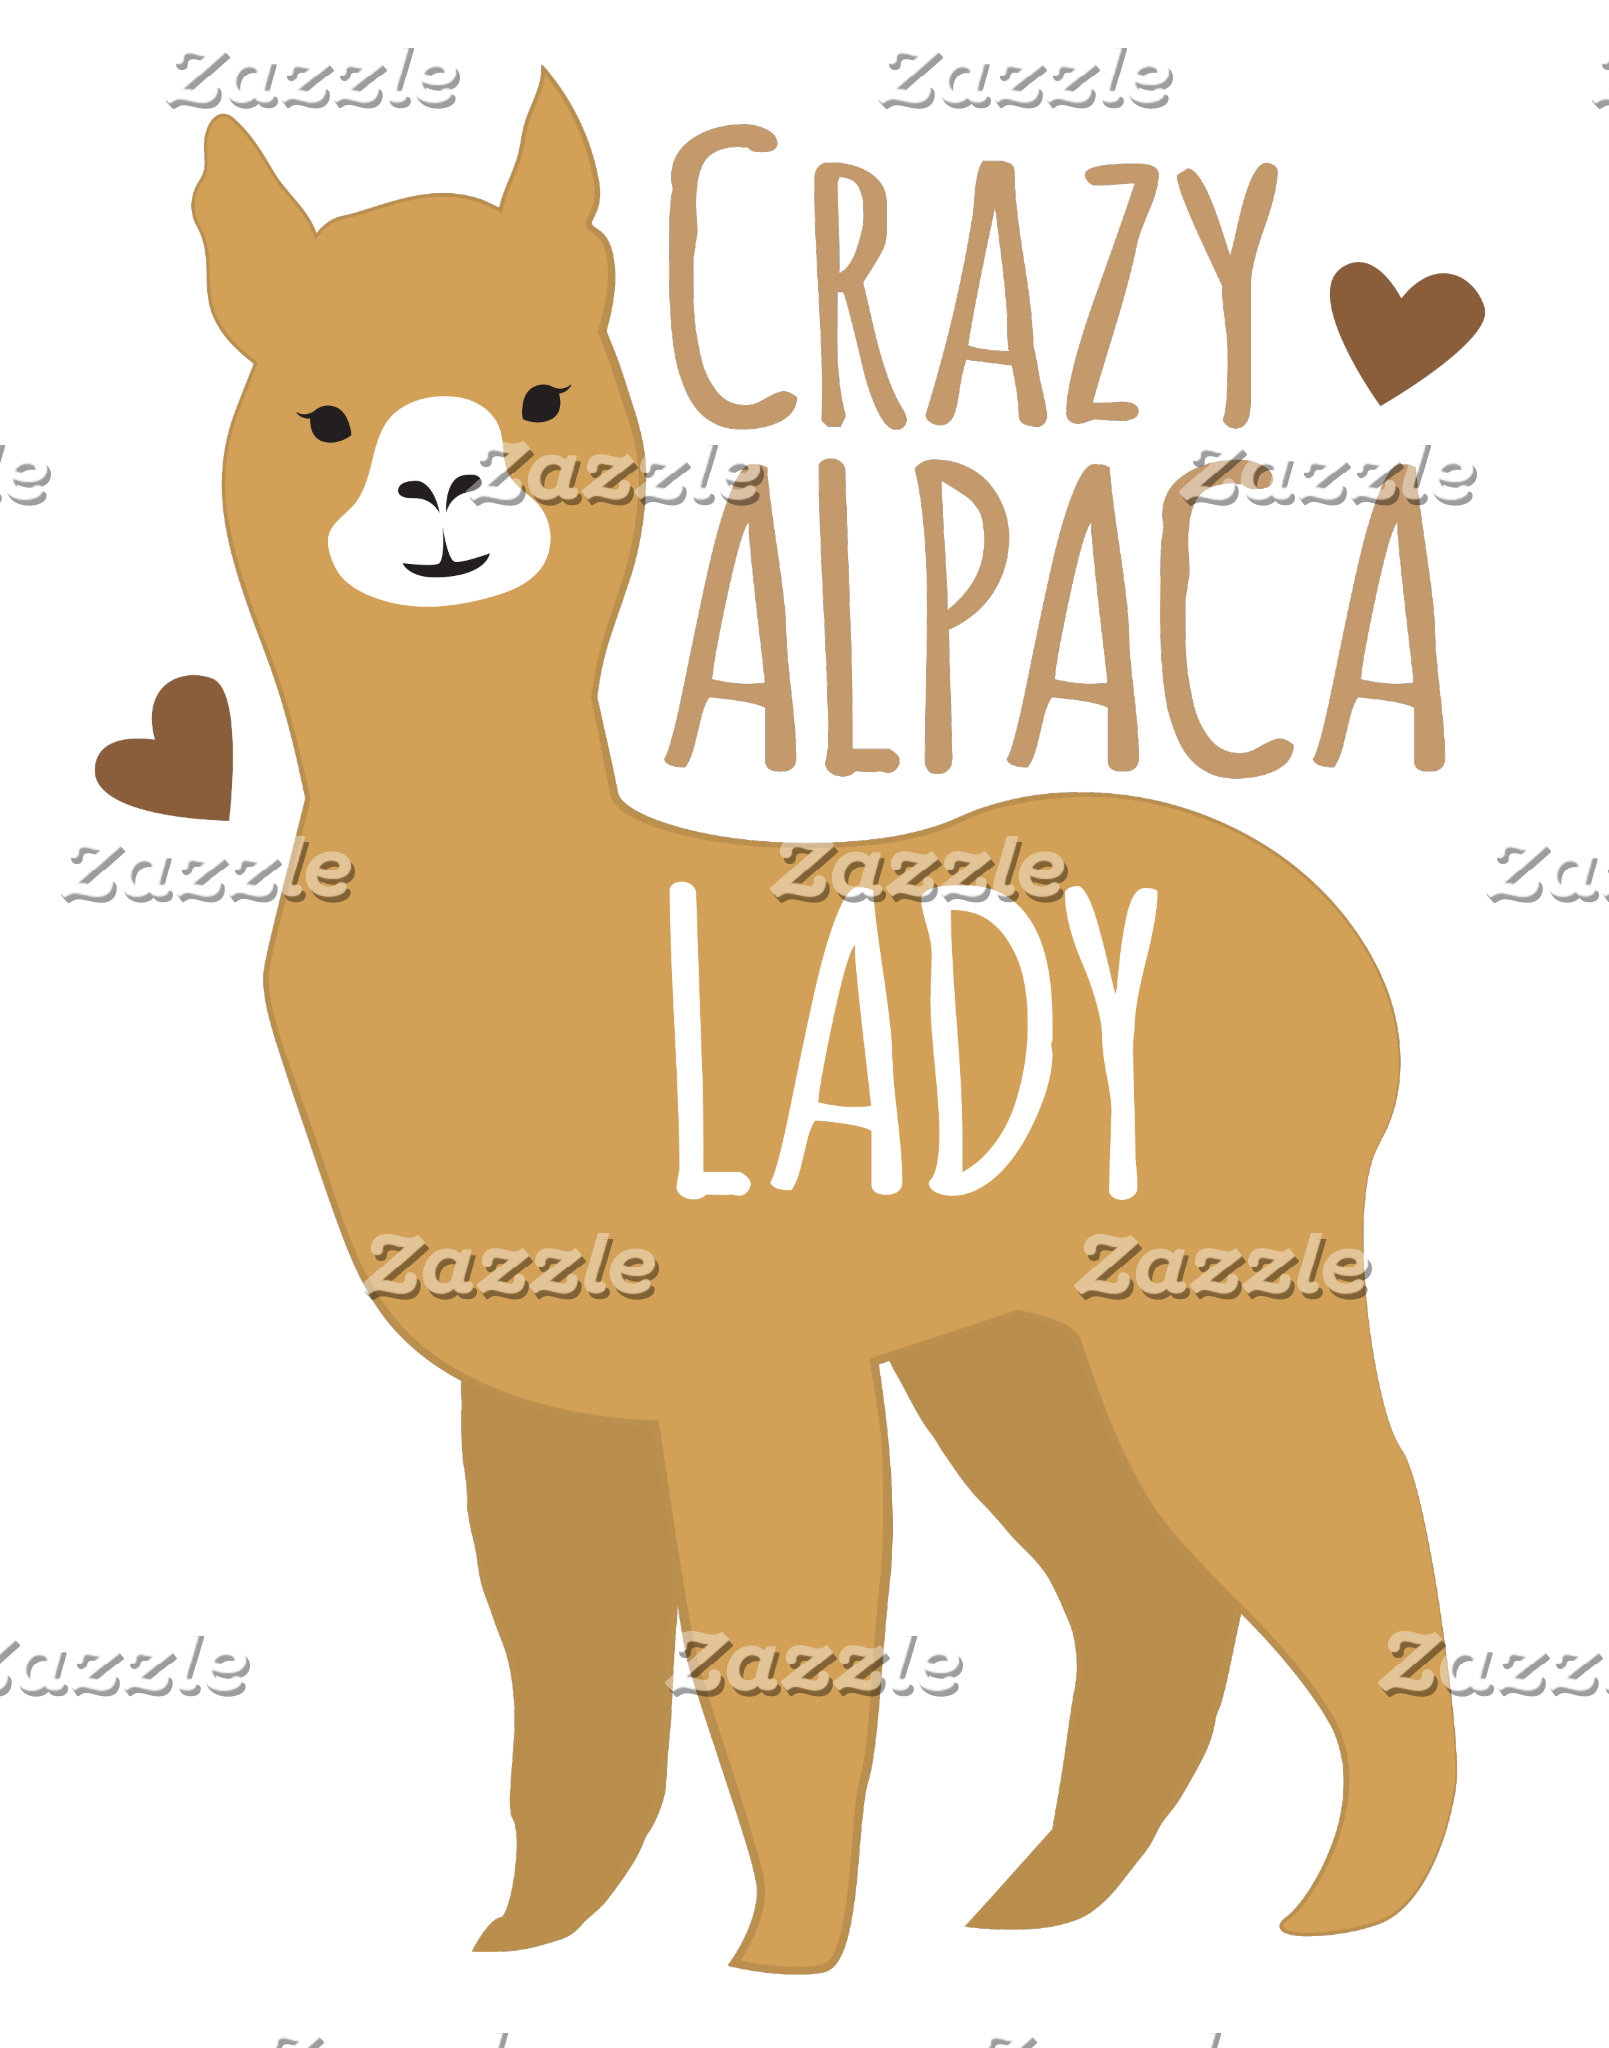 Crazy alpaca lady